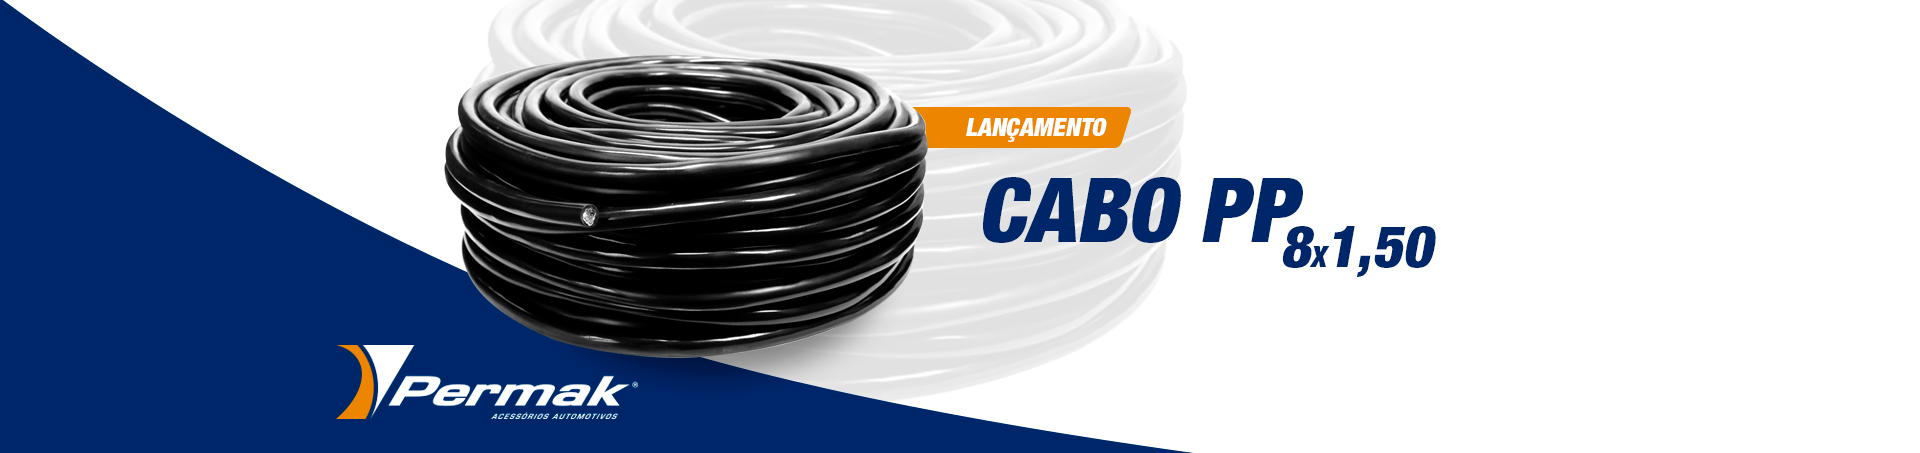 Cabo PP 8x1,50